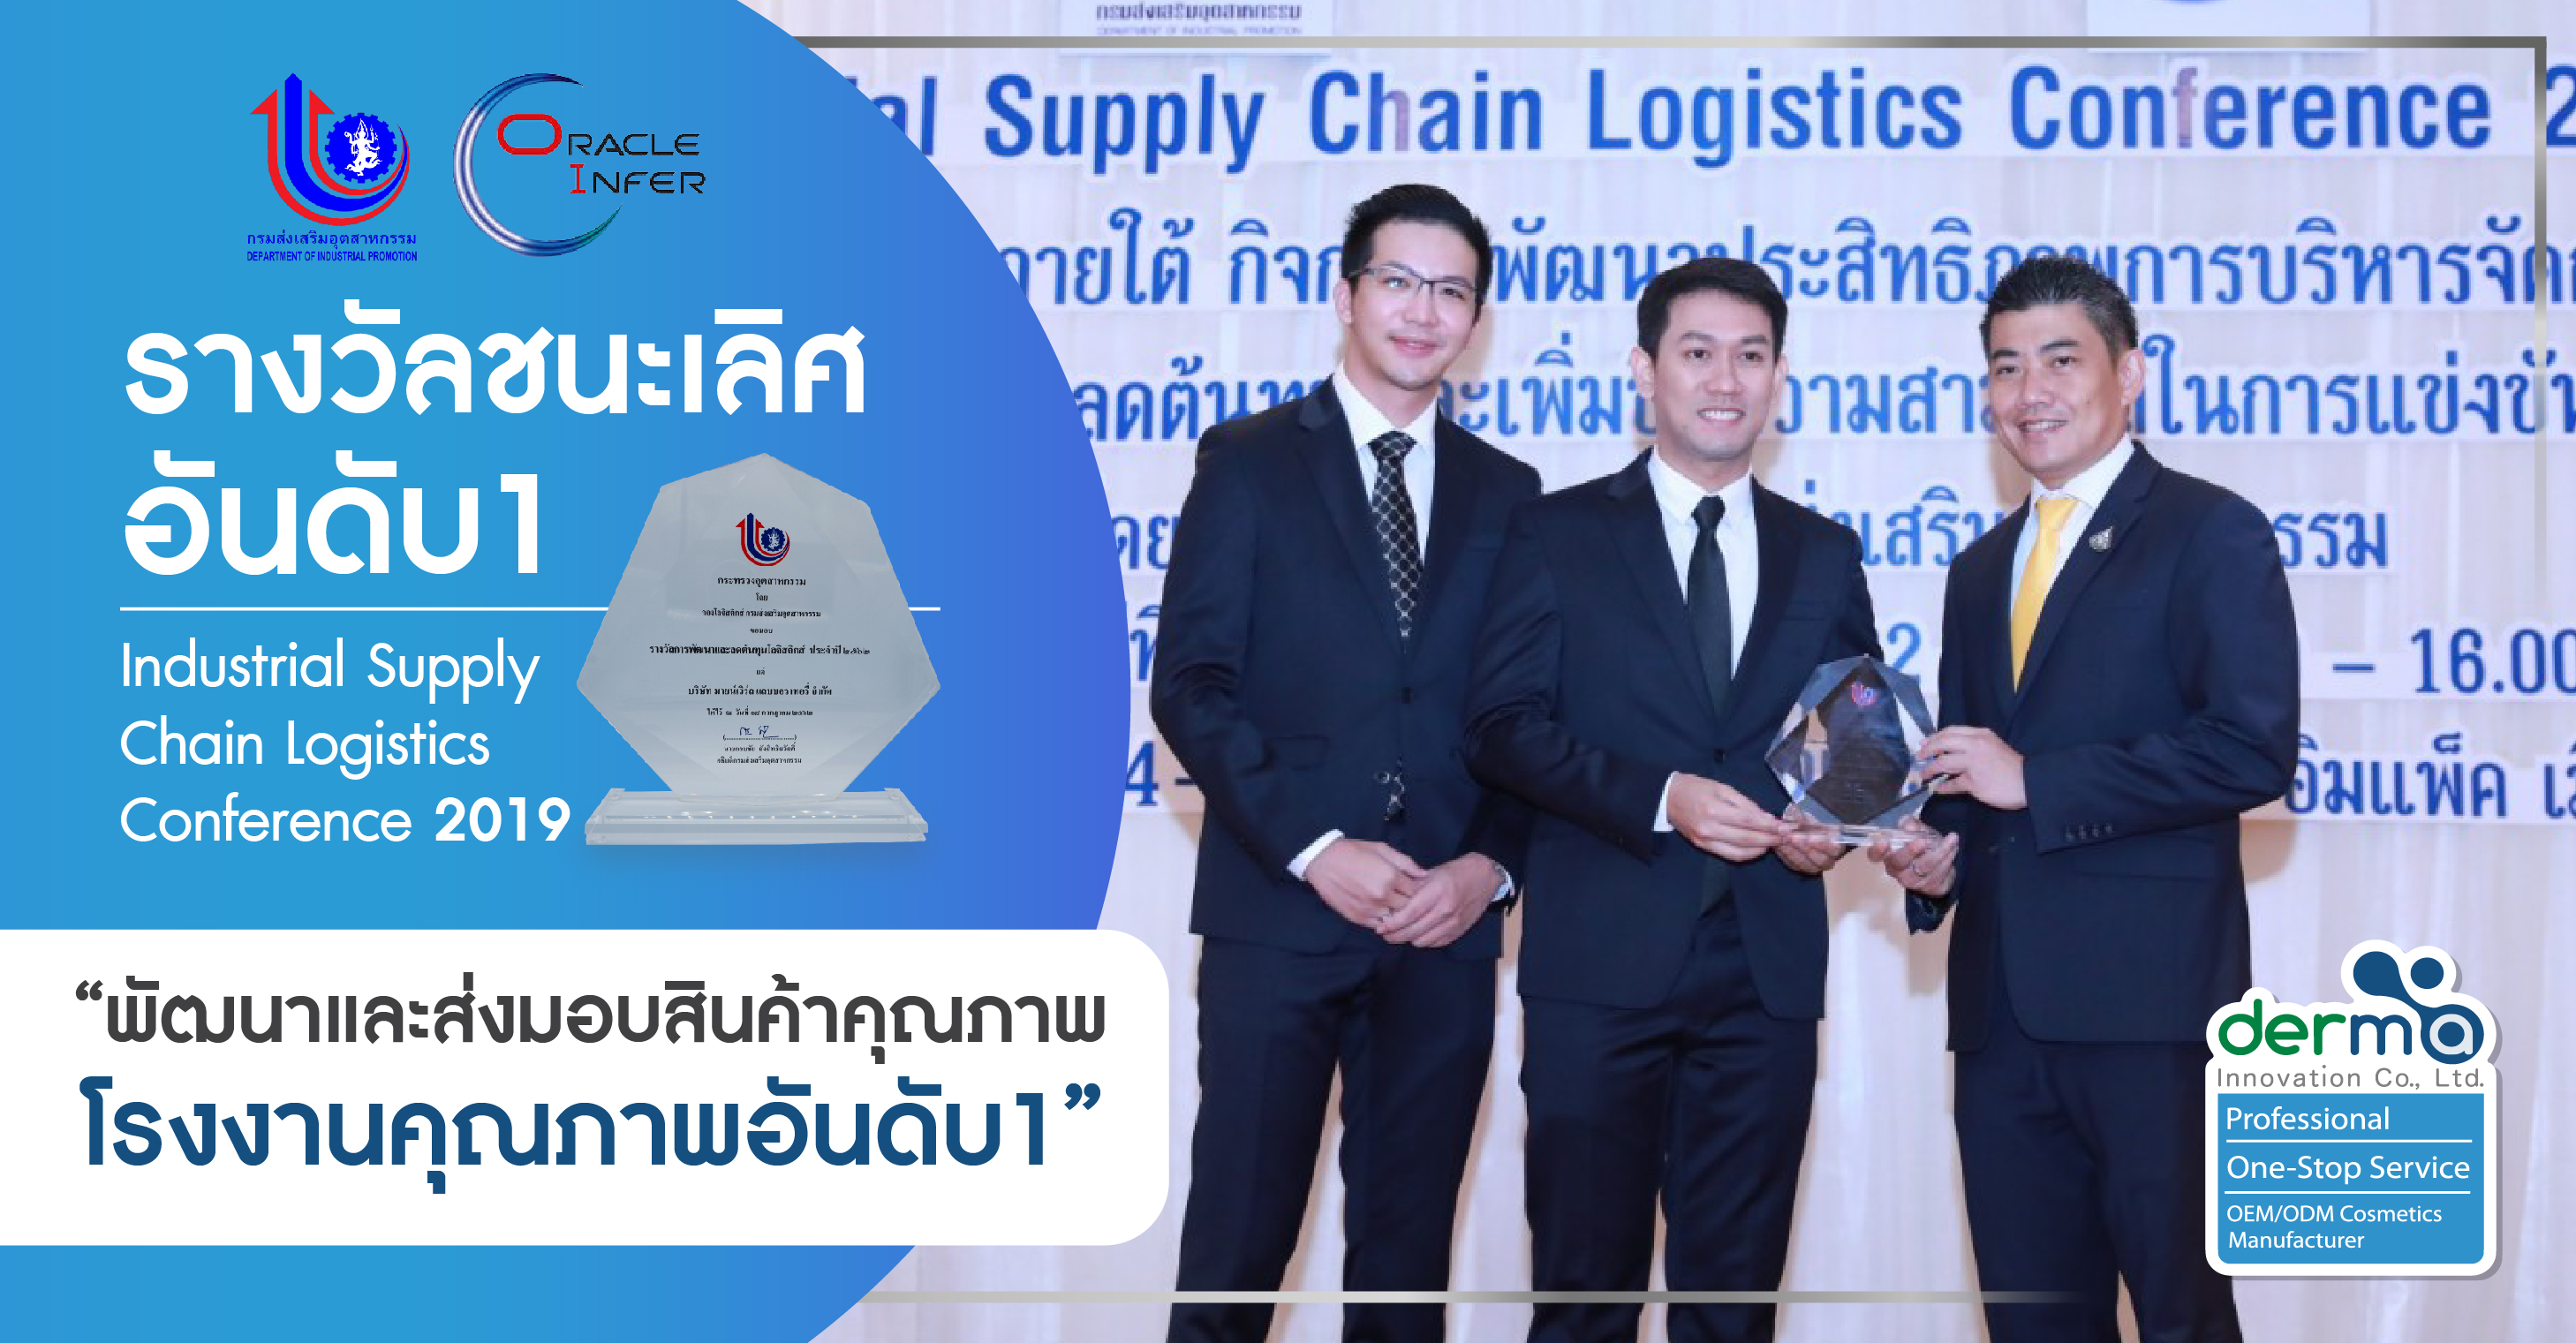 Derma Innovation Industrial Supply Chain Logistics Conference 2019